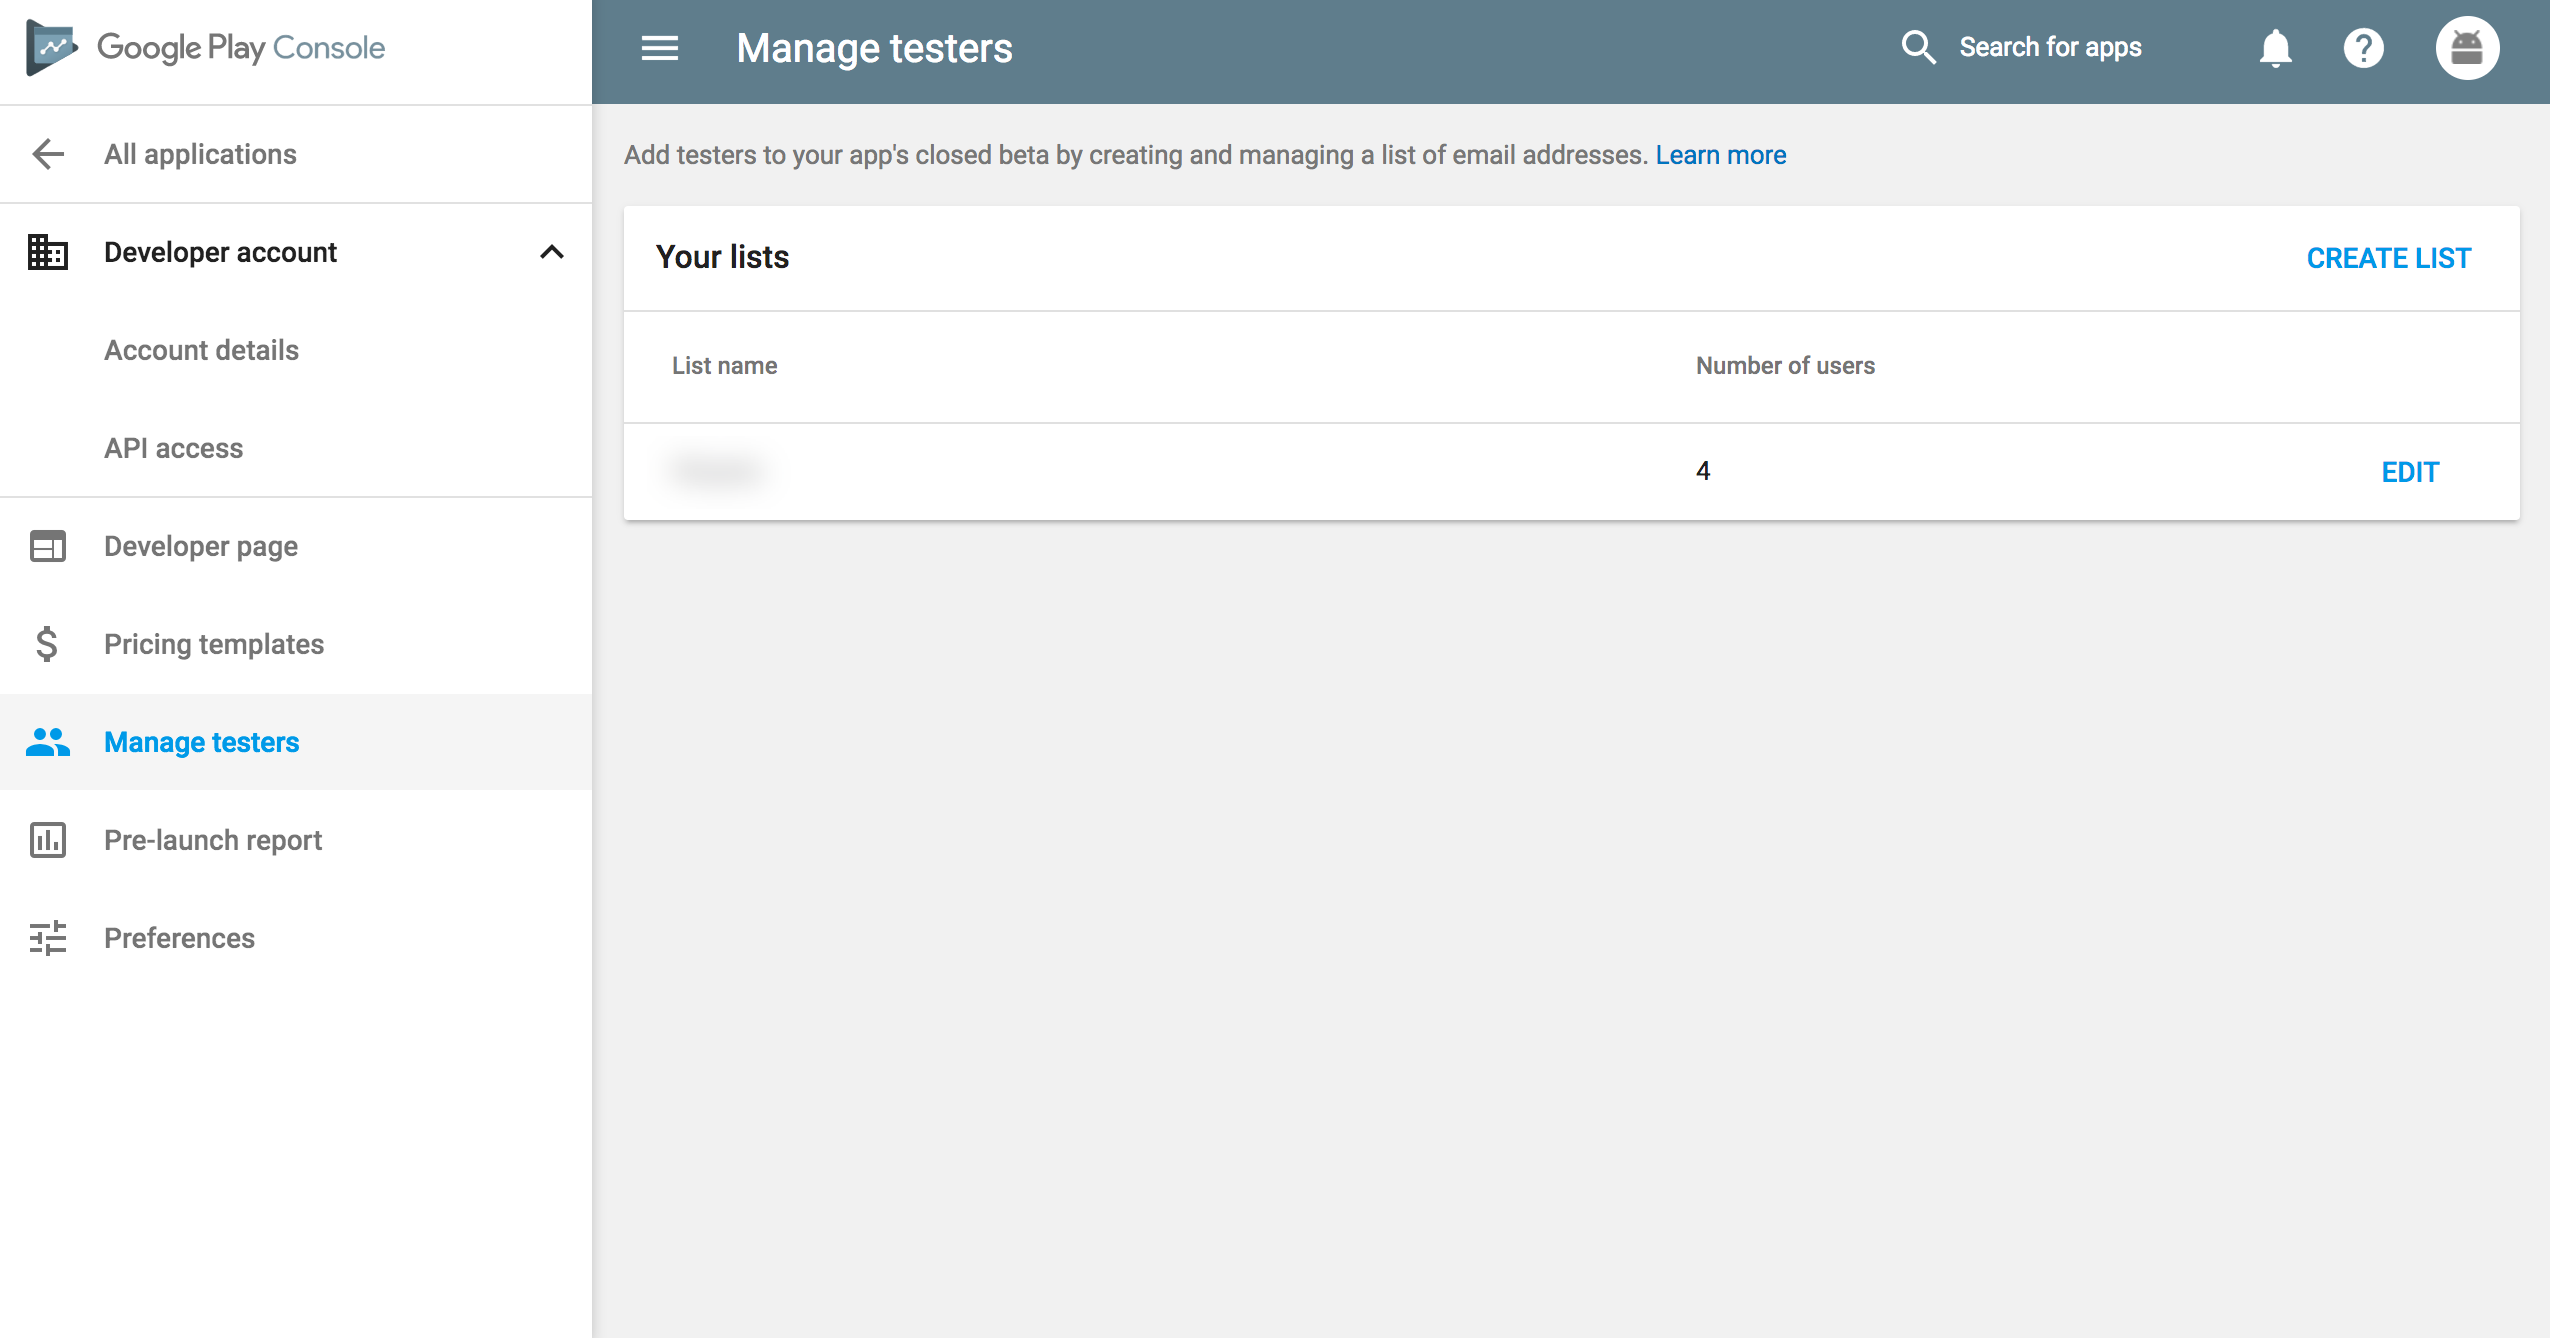 Manage your testers that can access your IAP products